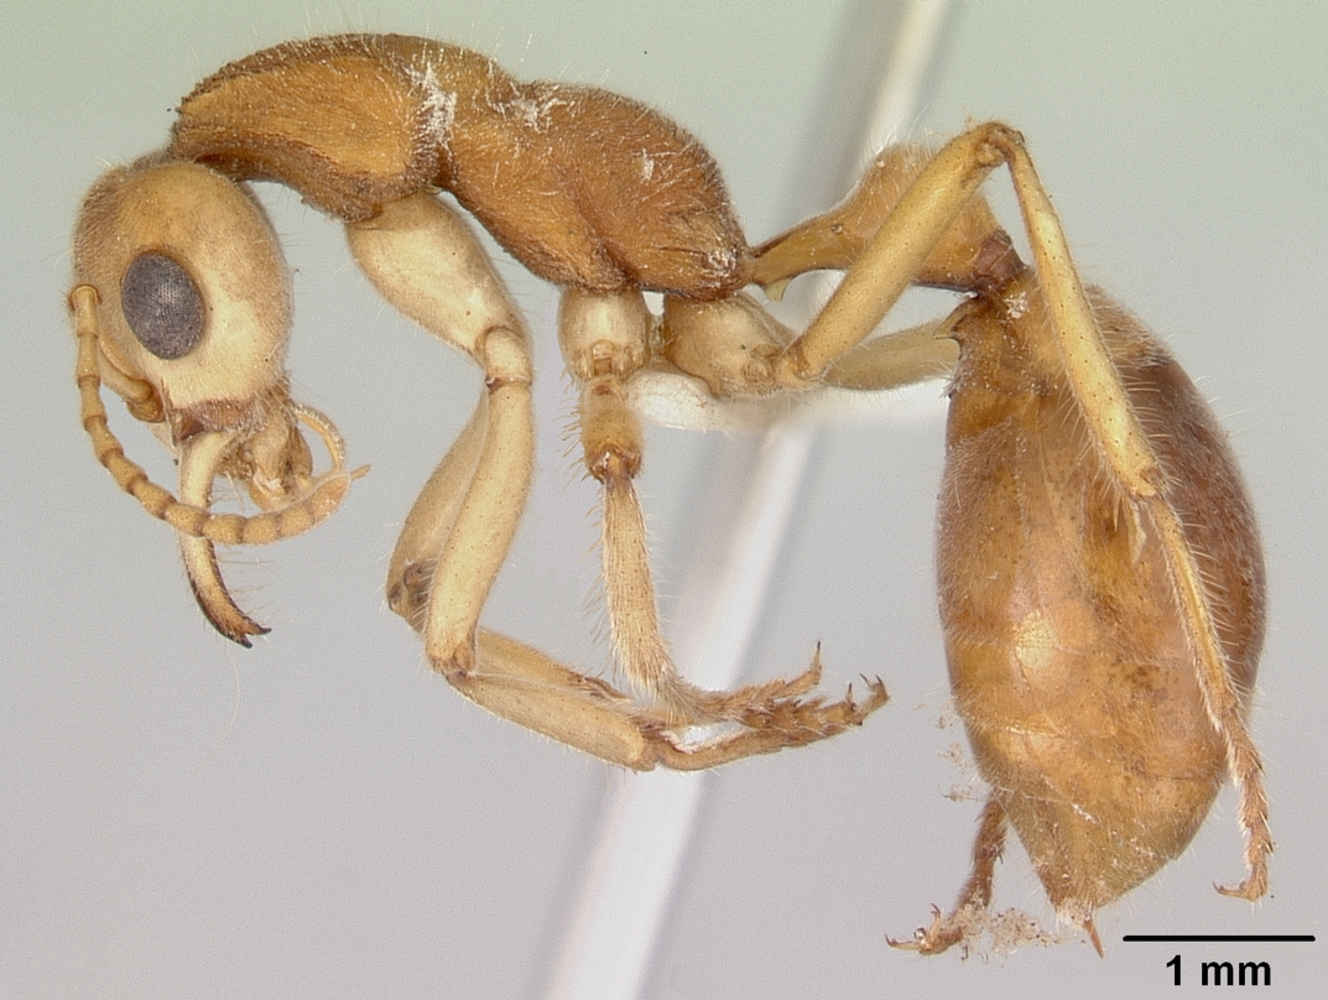 Profile view of the Dinosaur Ant - Nothomyrmecia macrops